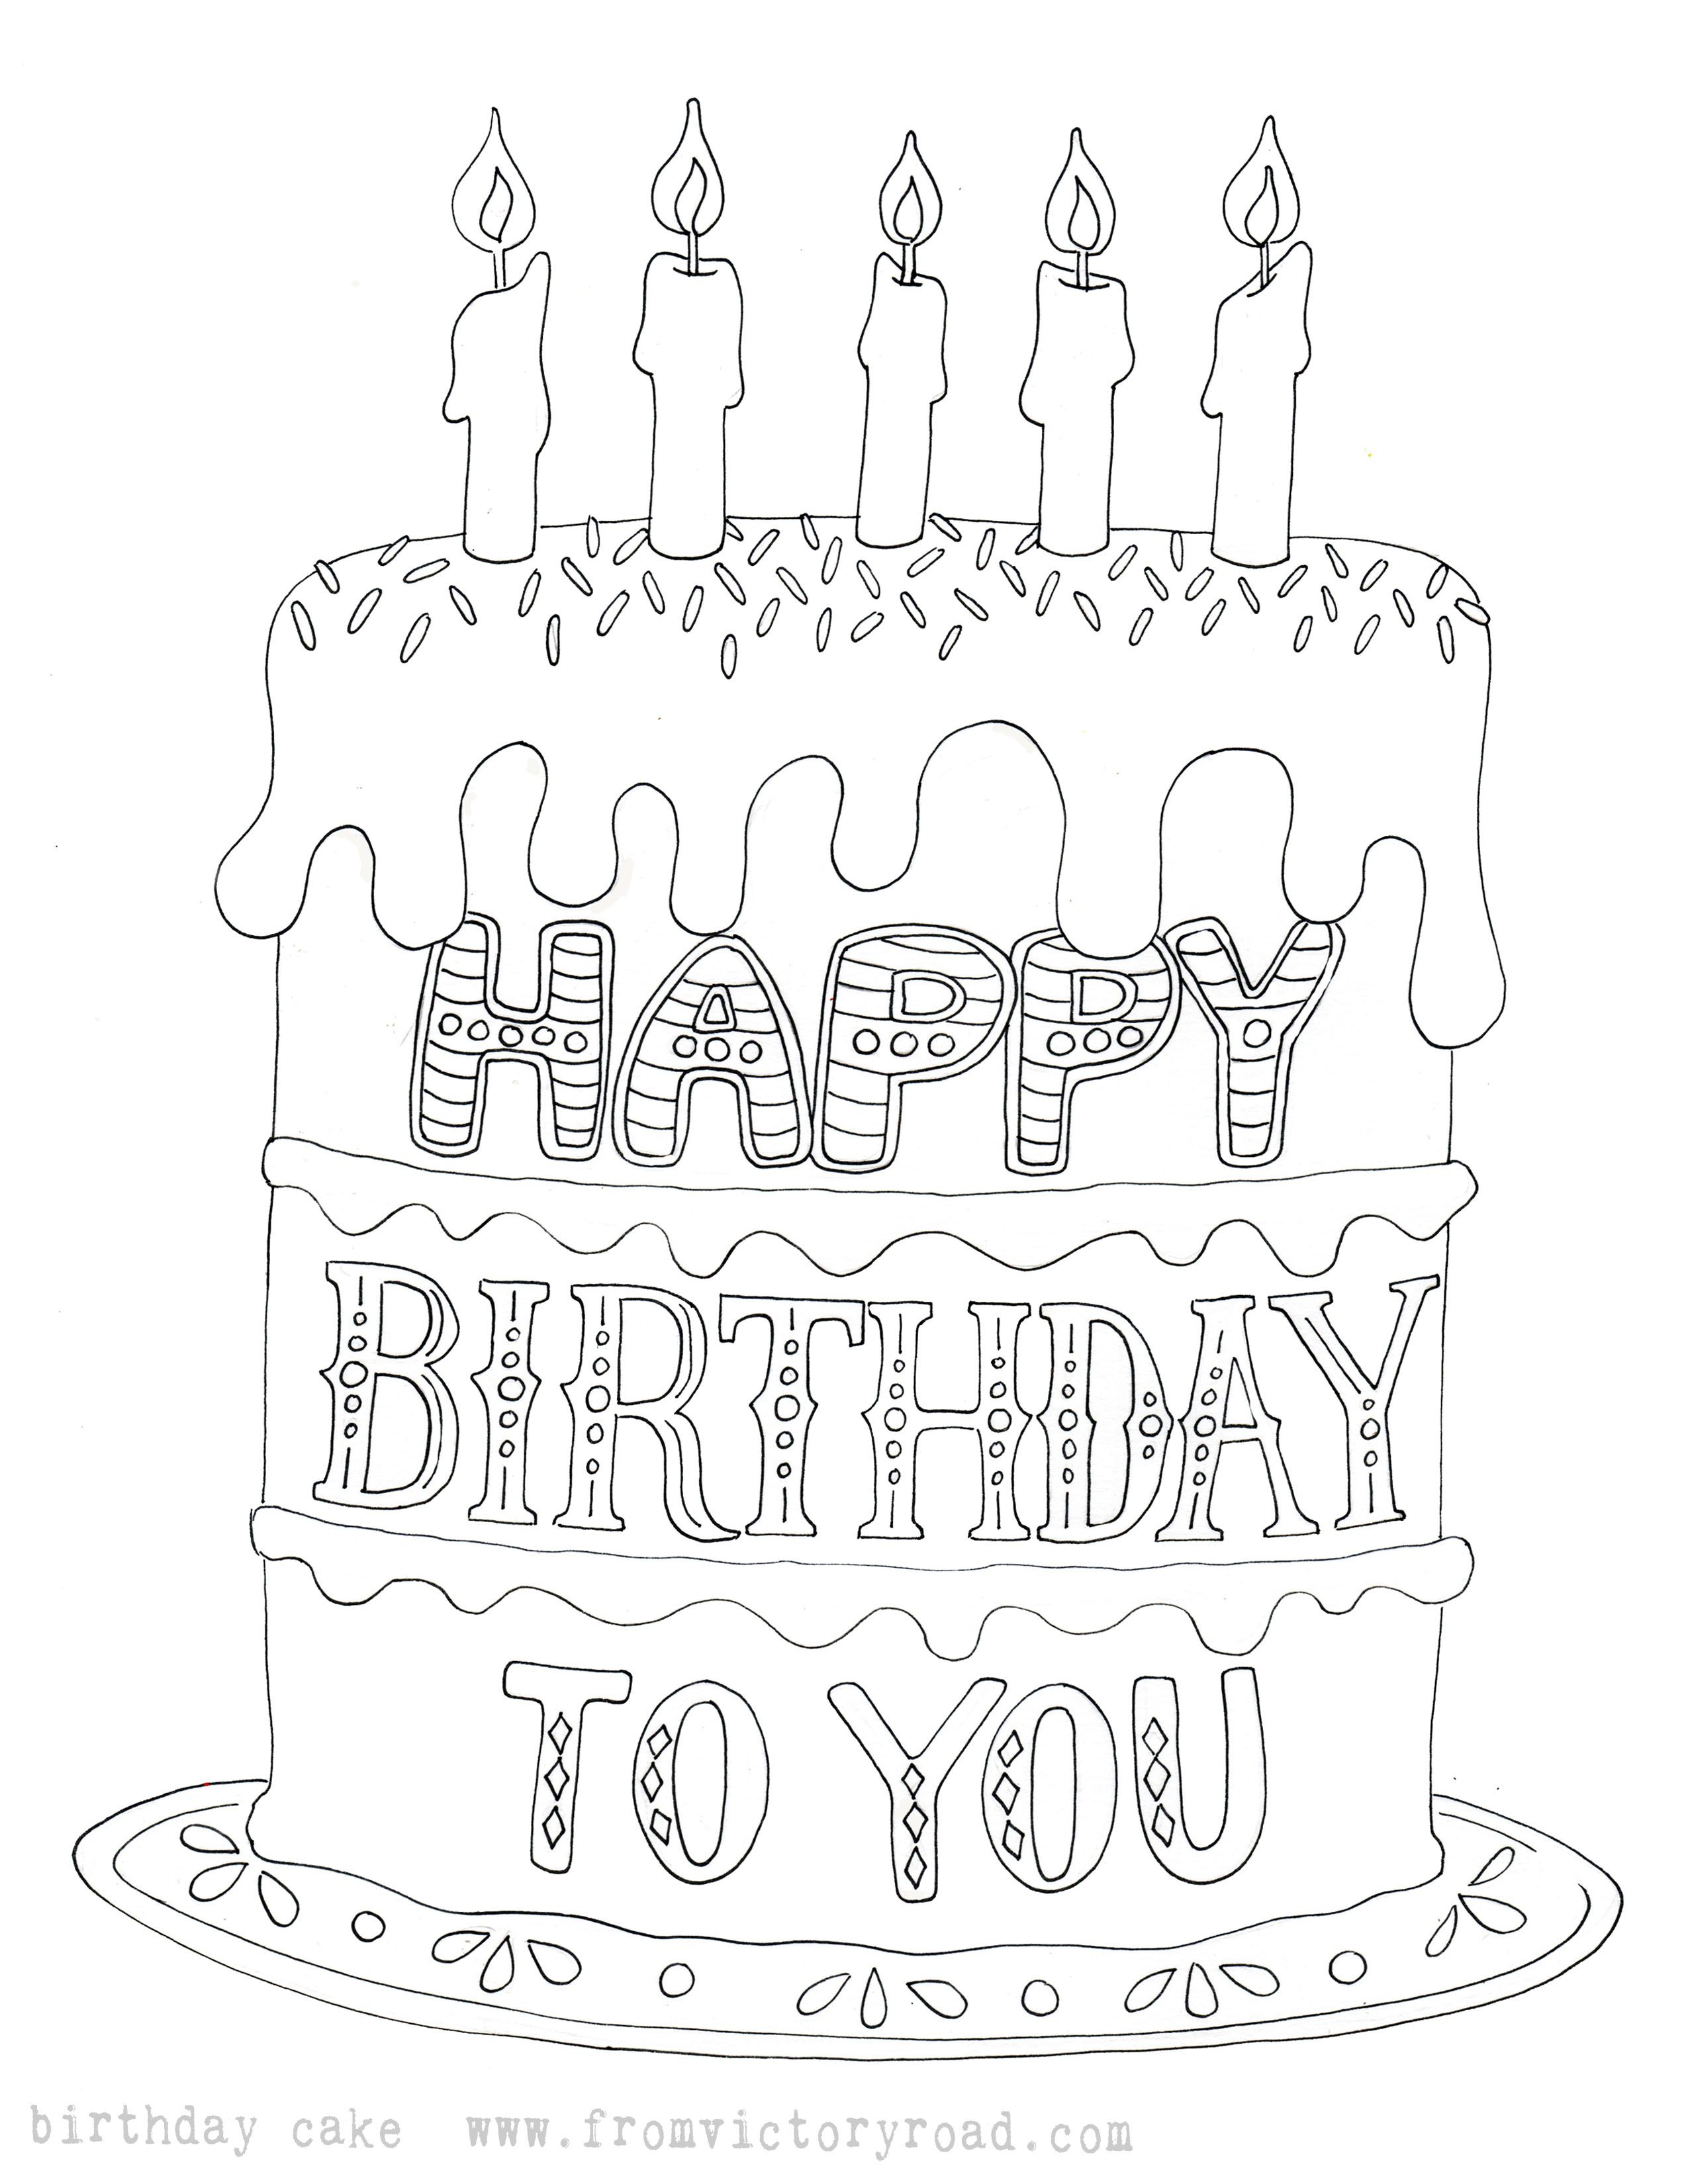 Happy Birthday to Me, a Gift for You! | Happy birthday ...